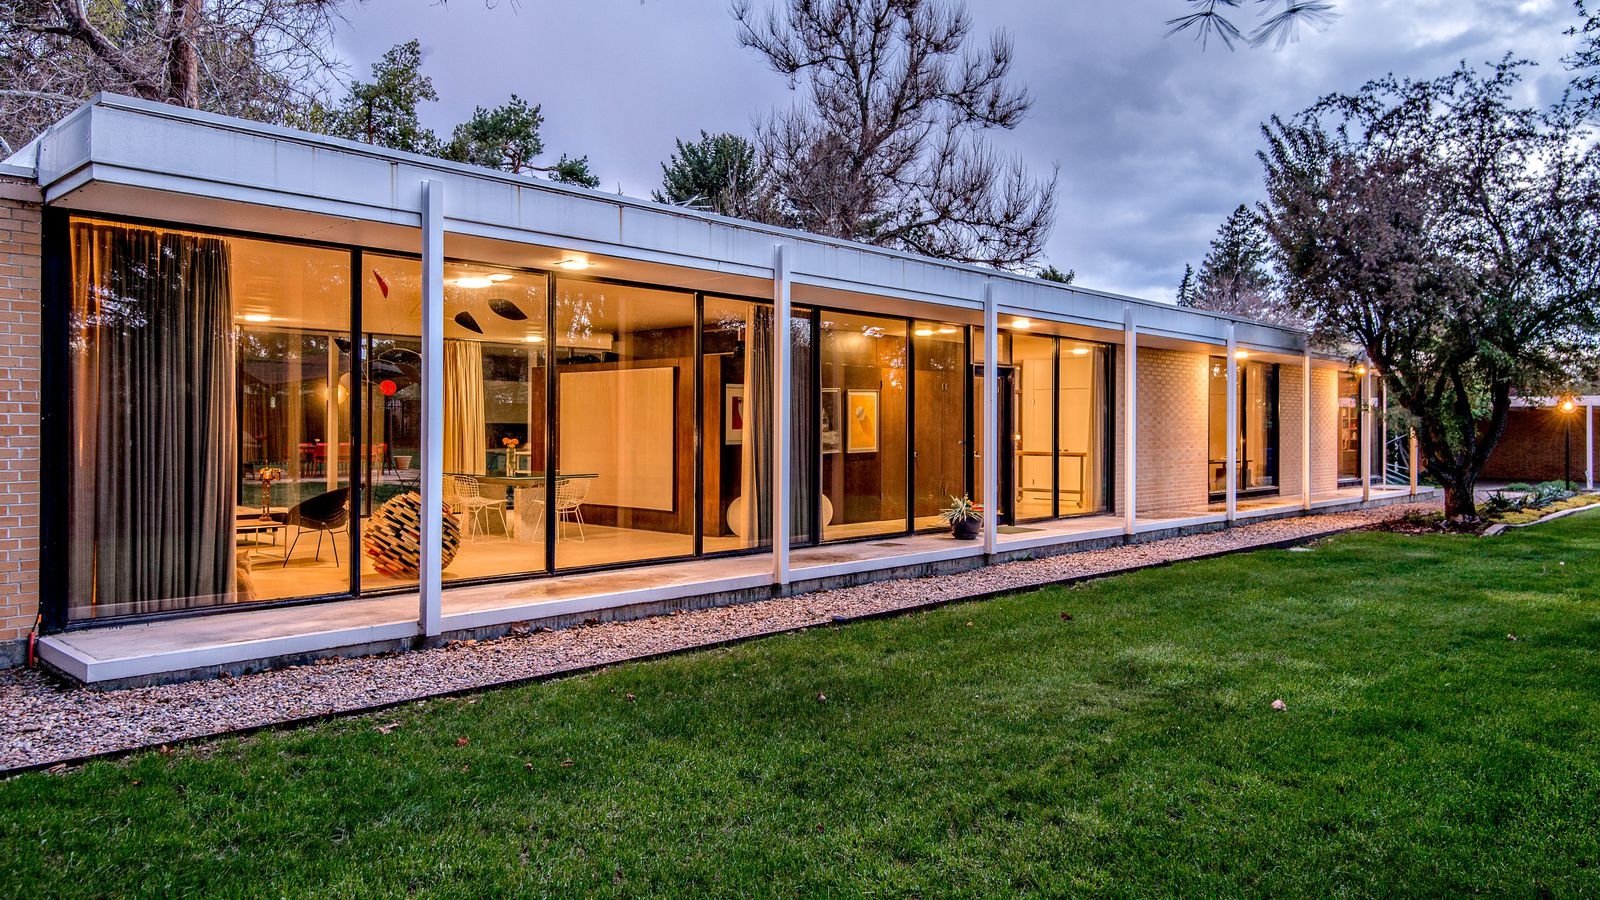 Midcentury Home Architect 39 S Own Glass Box Gem Asks 825k Curbed